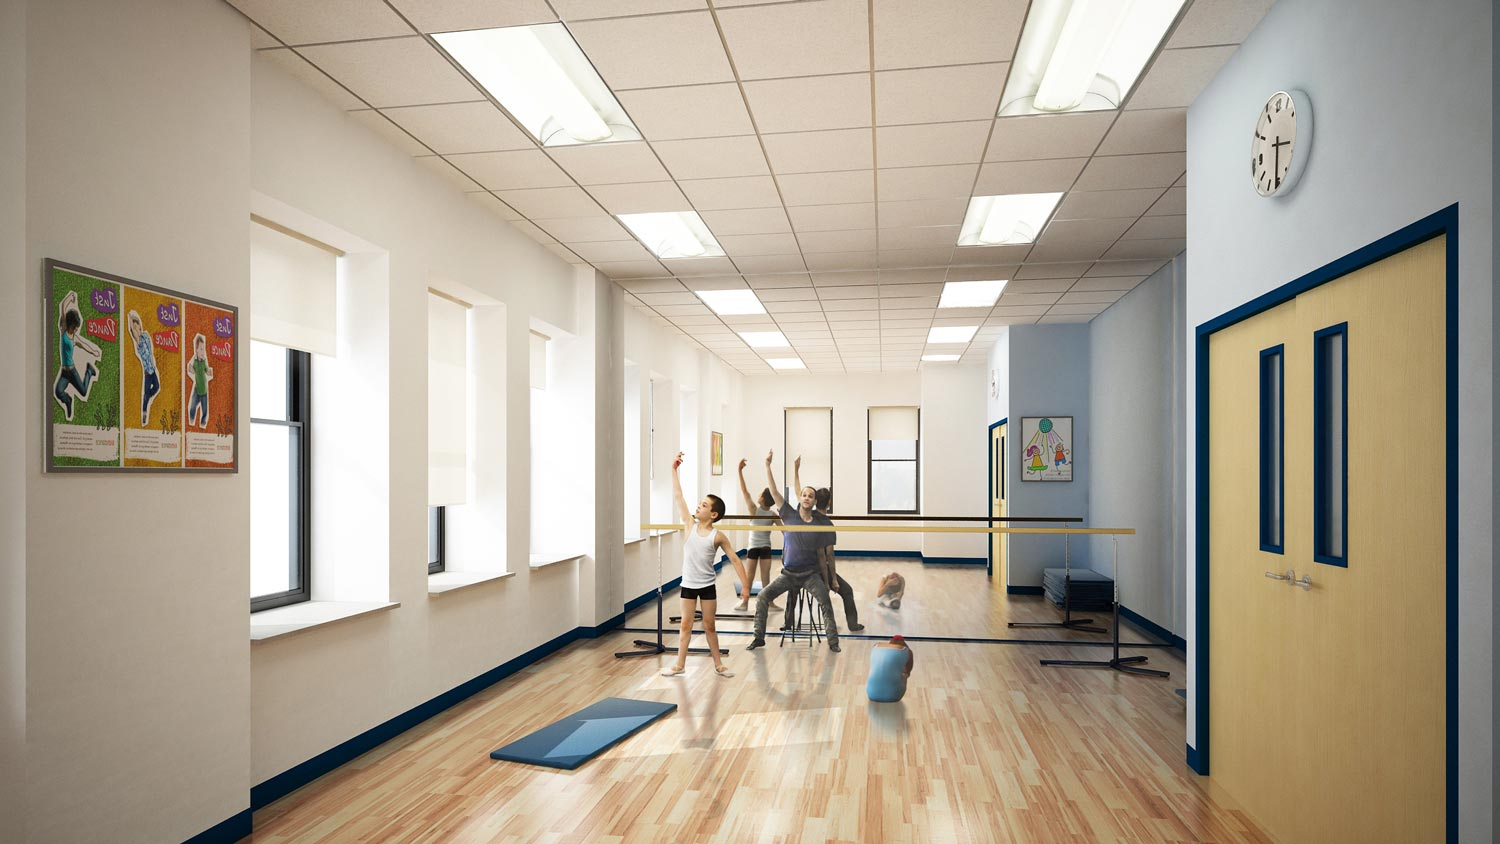 A dance studio doubles as a classroom at the Aaron Academy. Project by OCV Architects.